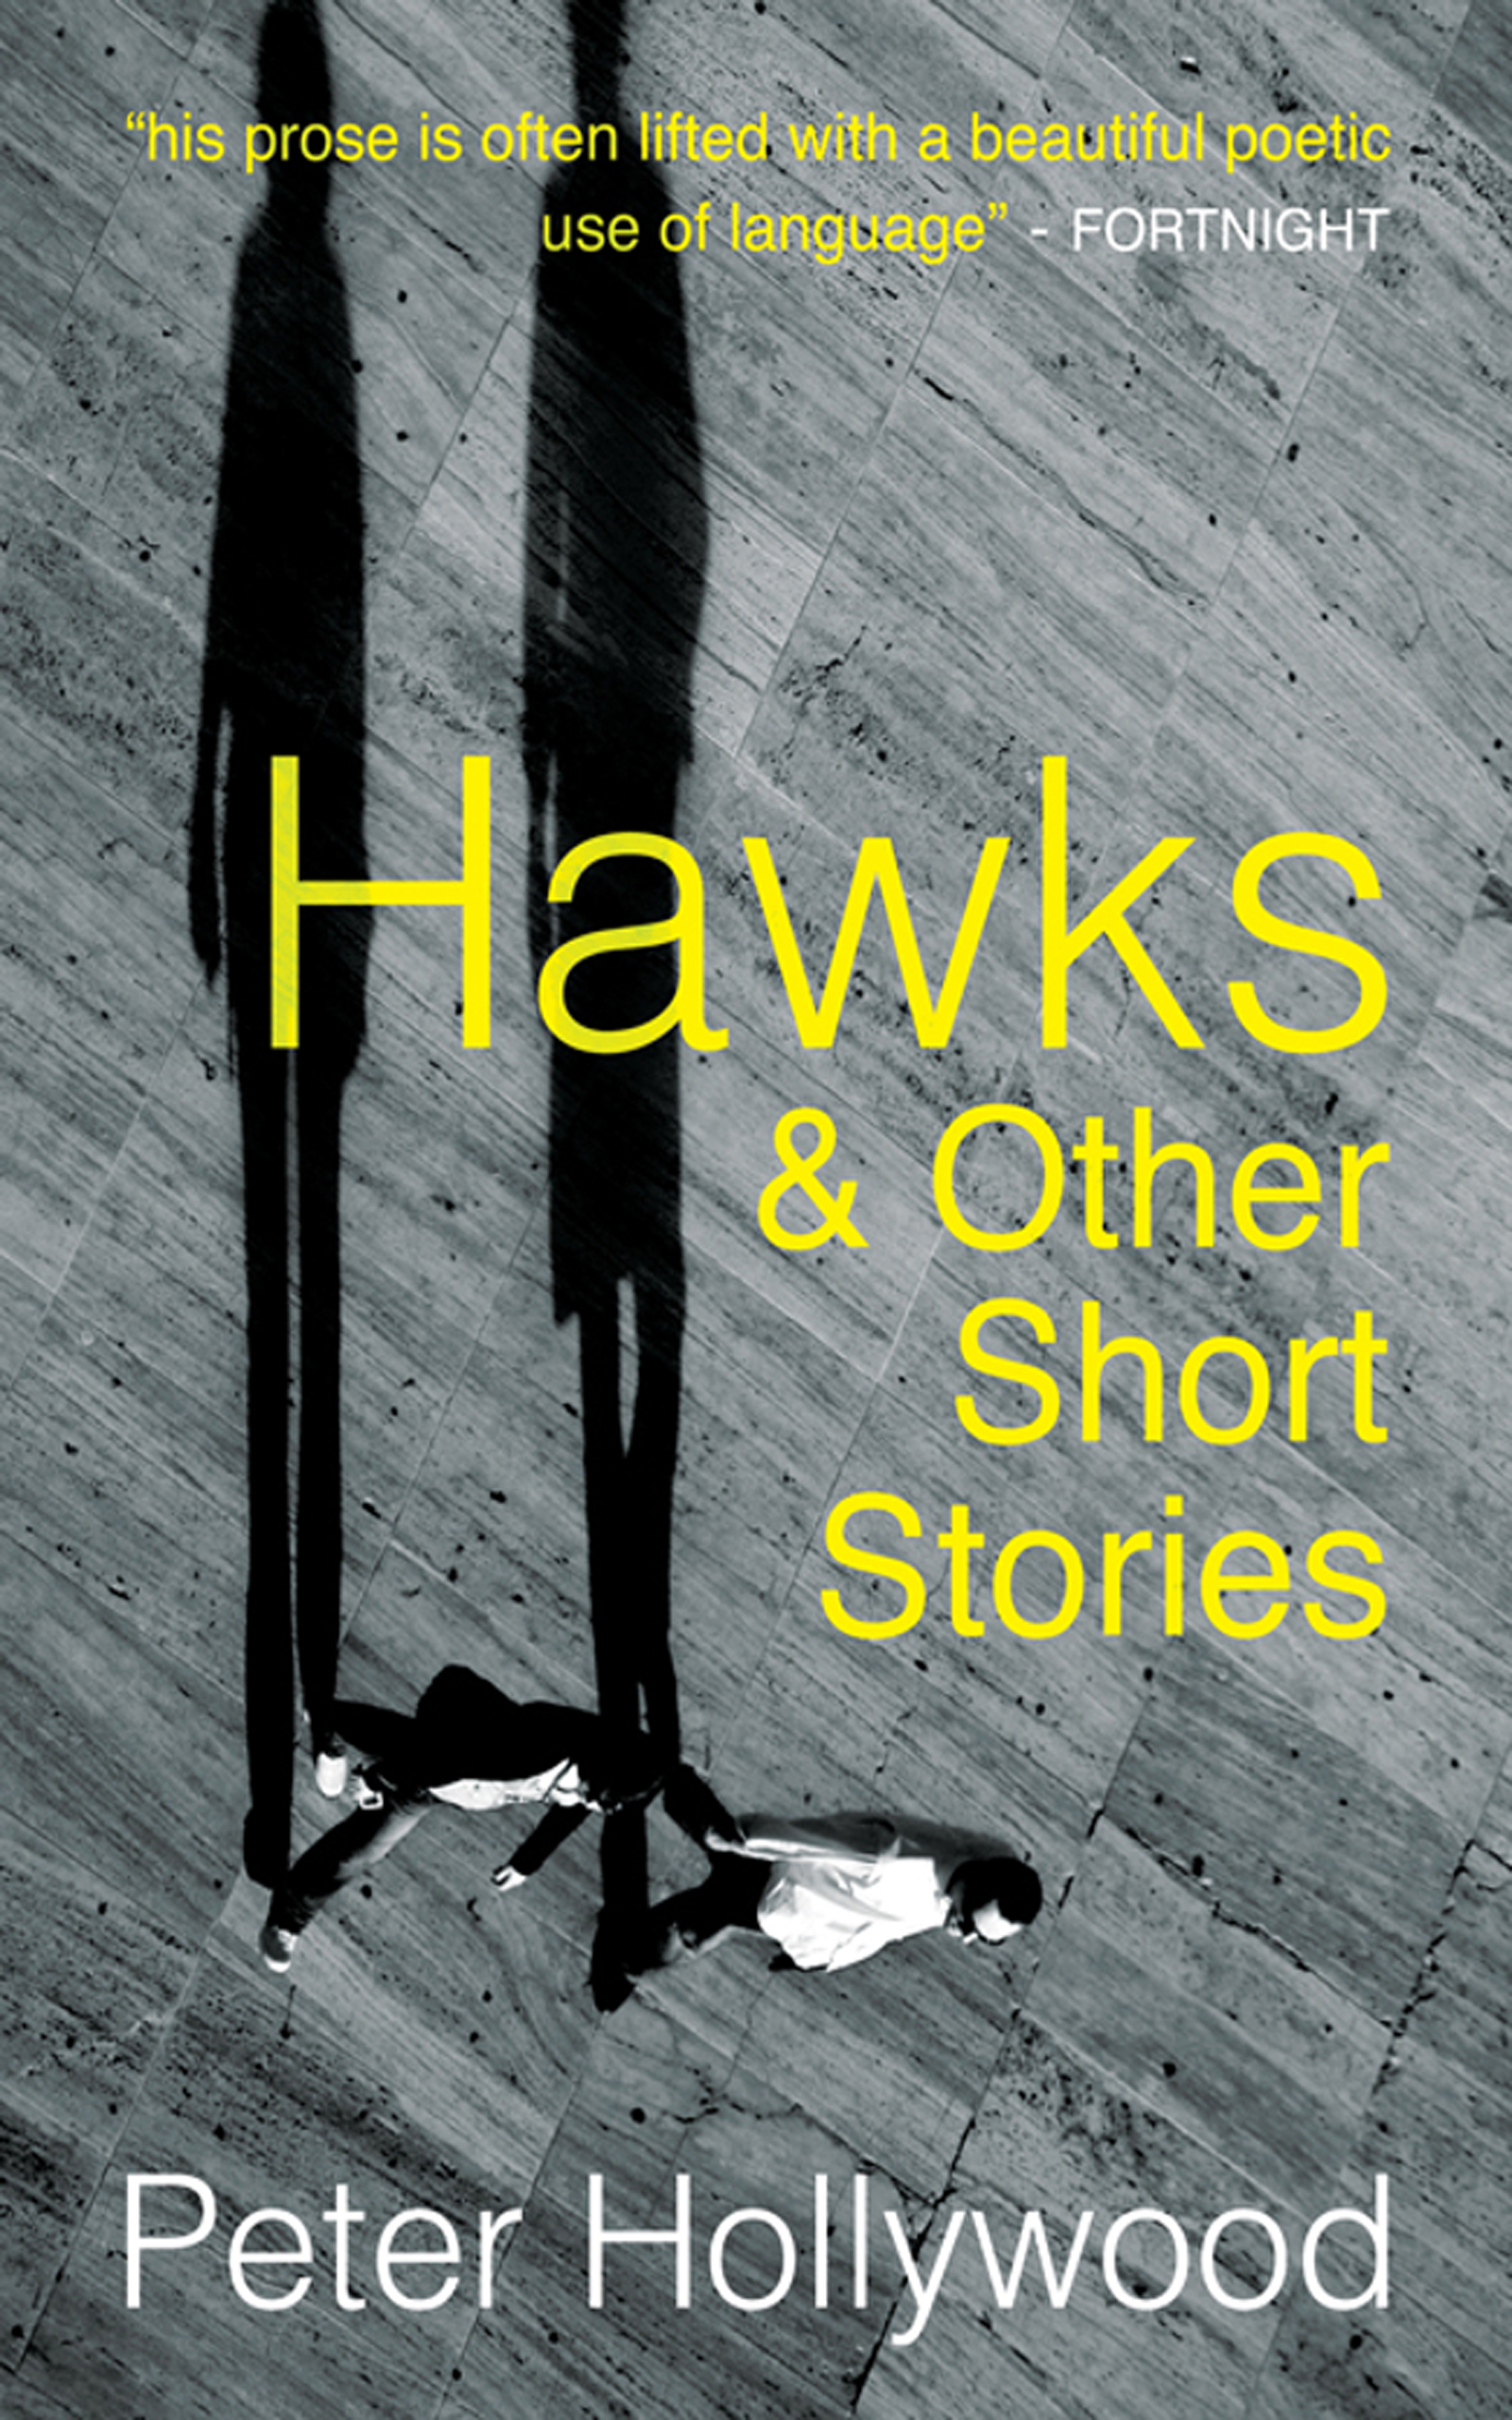 Hawks & Other Short Stories